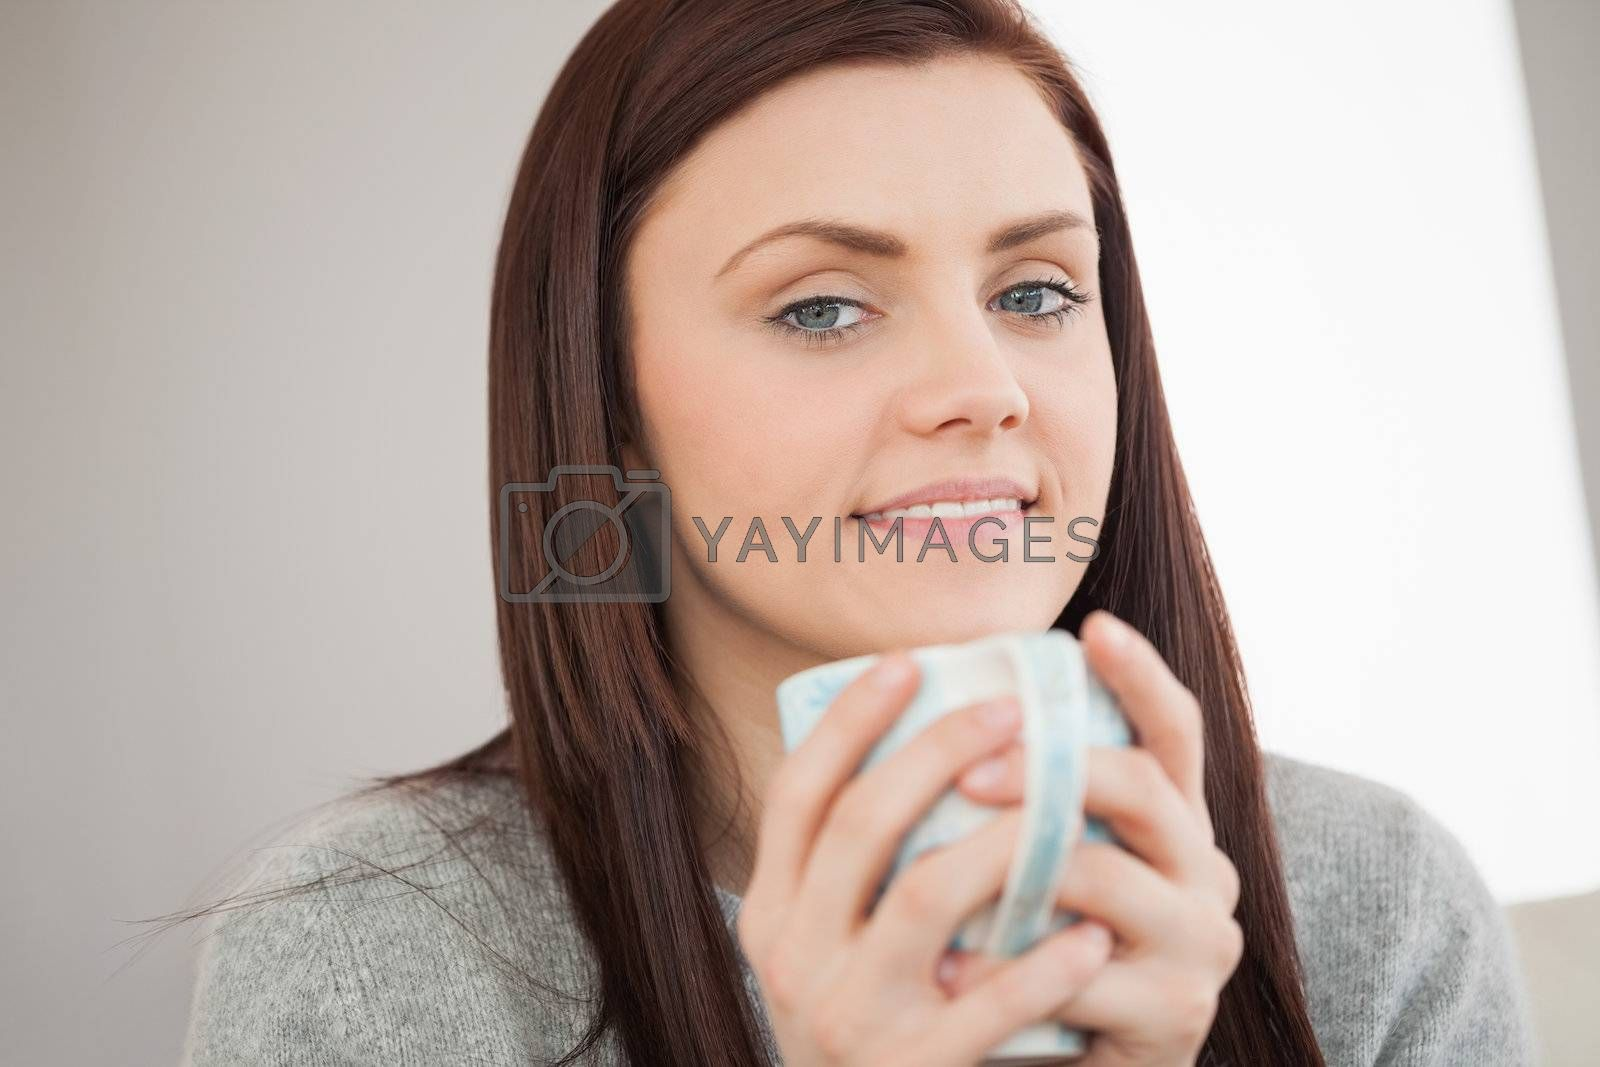 Thoughtful girl holding a cup of coffee and looking at camera by Wavebreakmedia